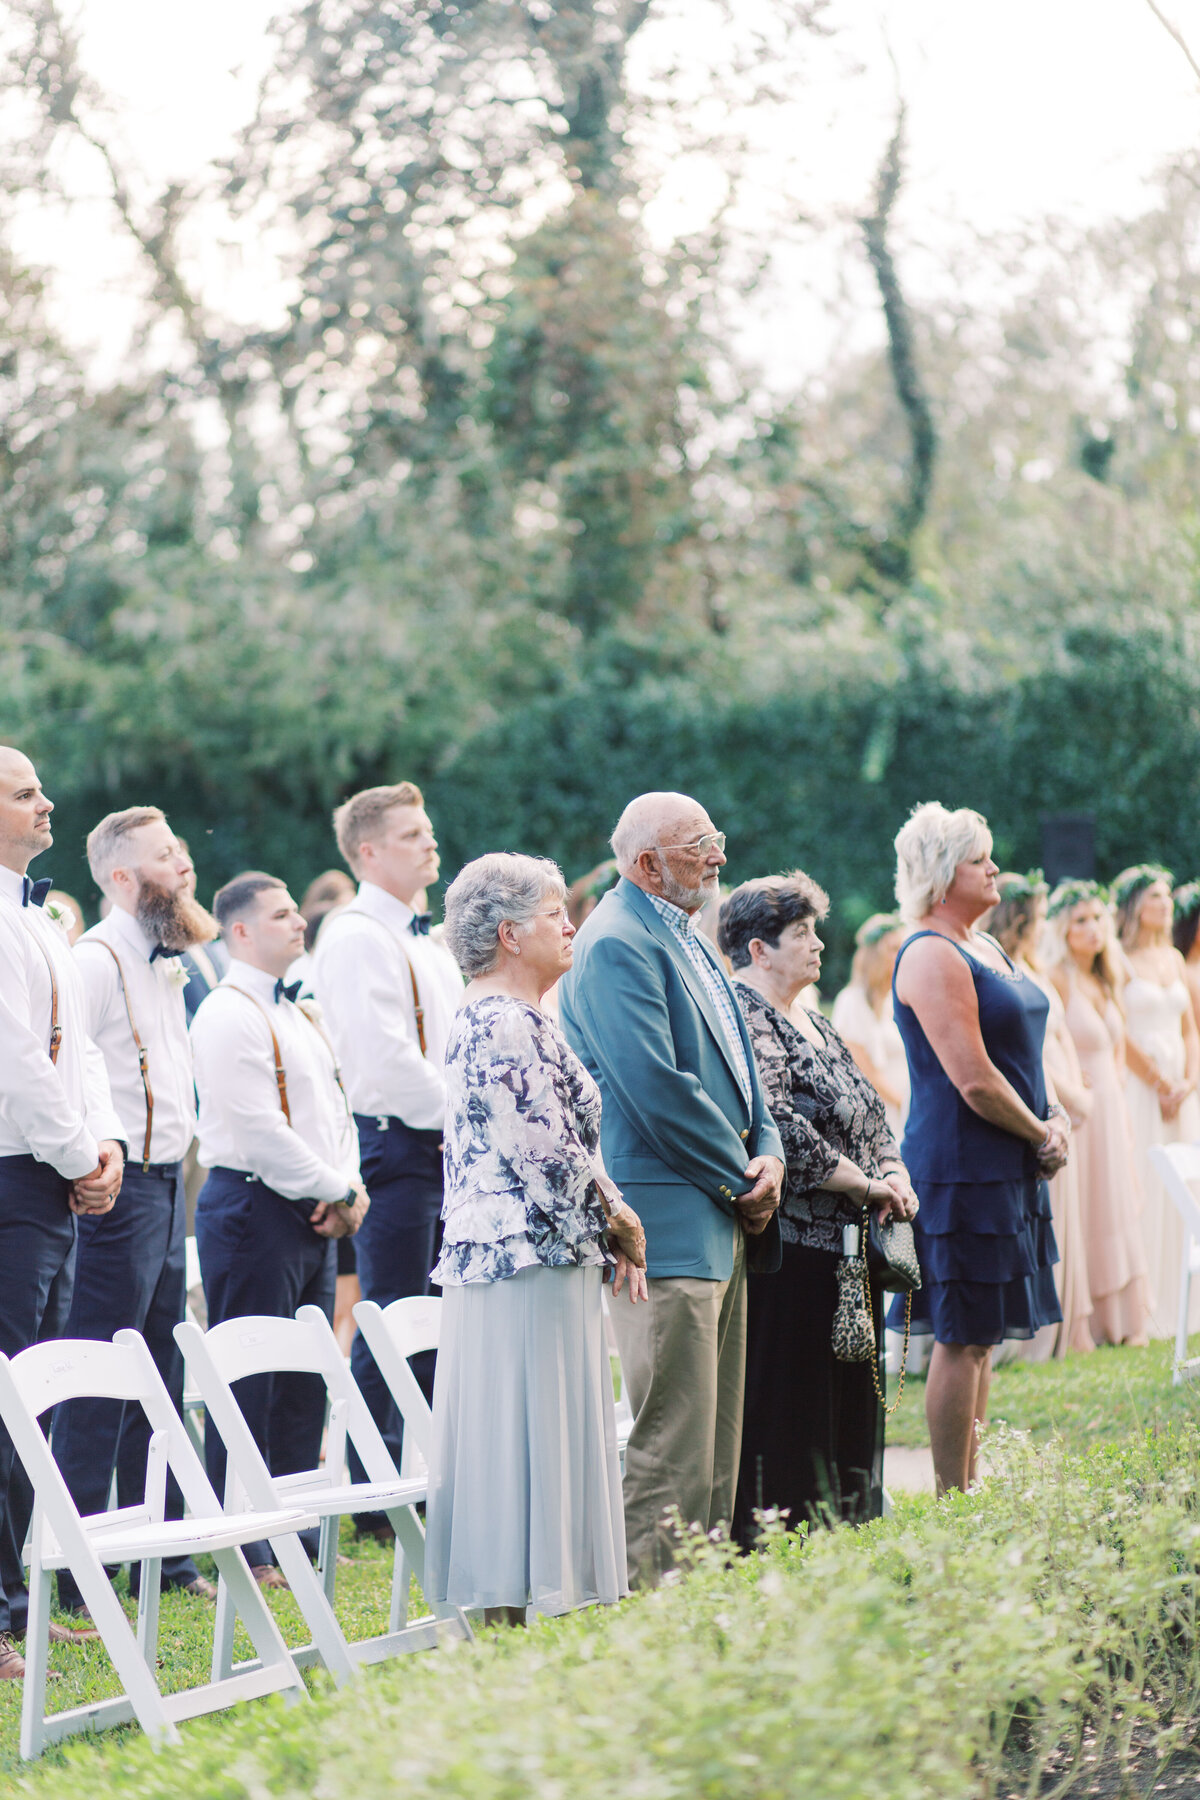 Melton_Wedding__Middleton_Place_Plantation_Charleston_South_Carolina_Jacksonville_Florida_Devon_Donnahoo_Photography__0591